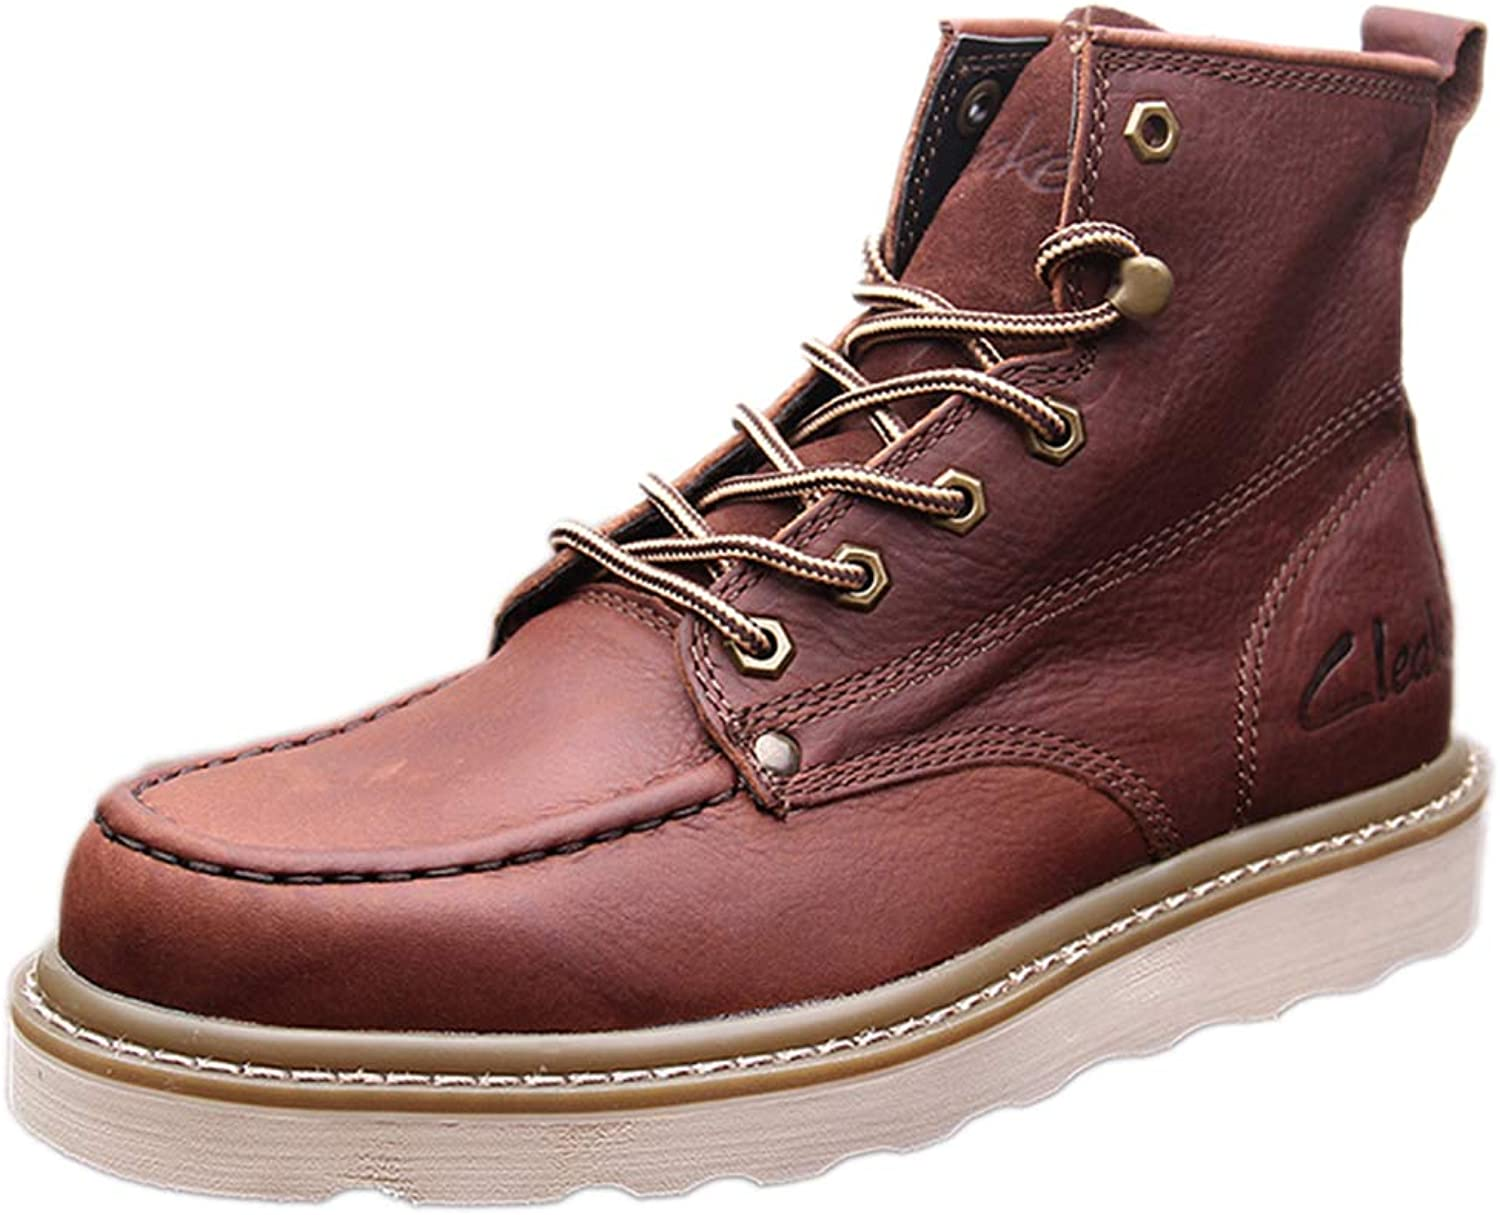 Snfgoij Work shoes Men Trainers Waterproof Anti-Slip Casual Autumn Martin Boots Casual Leather High Top Booties,Brown-39